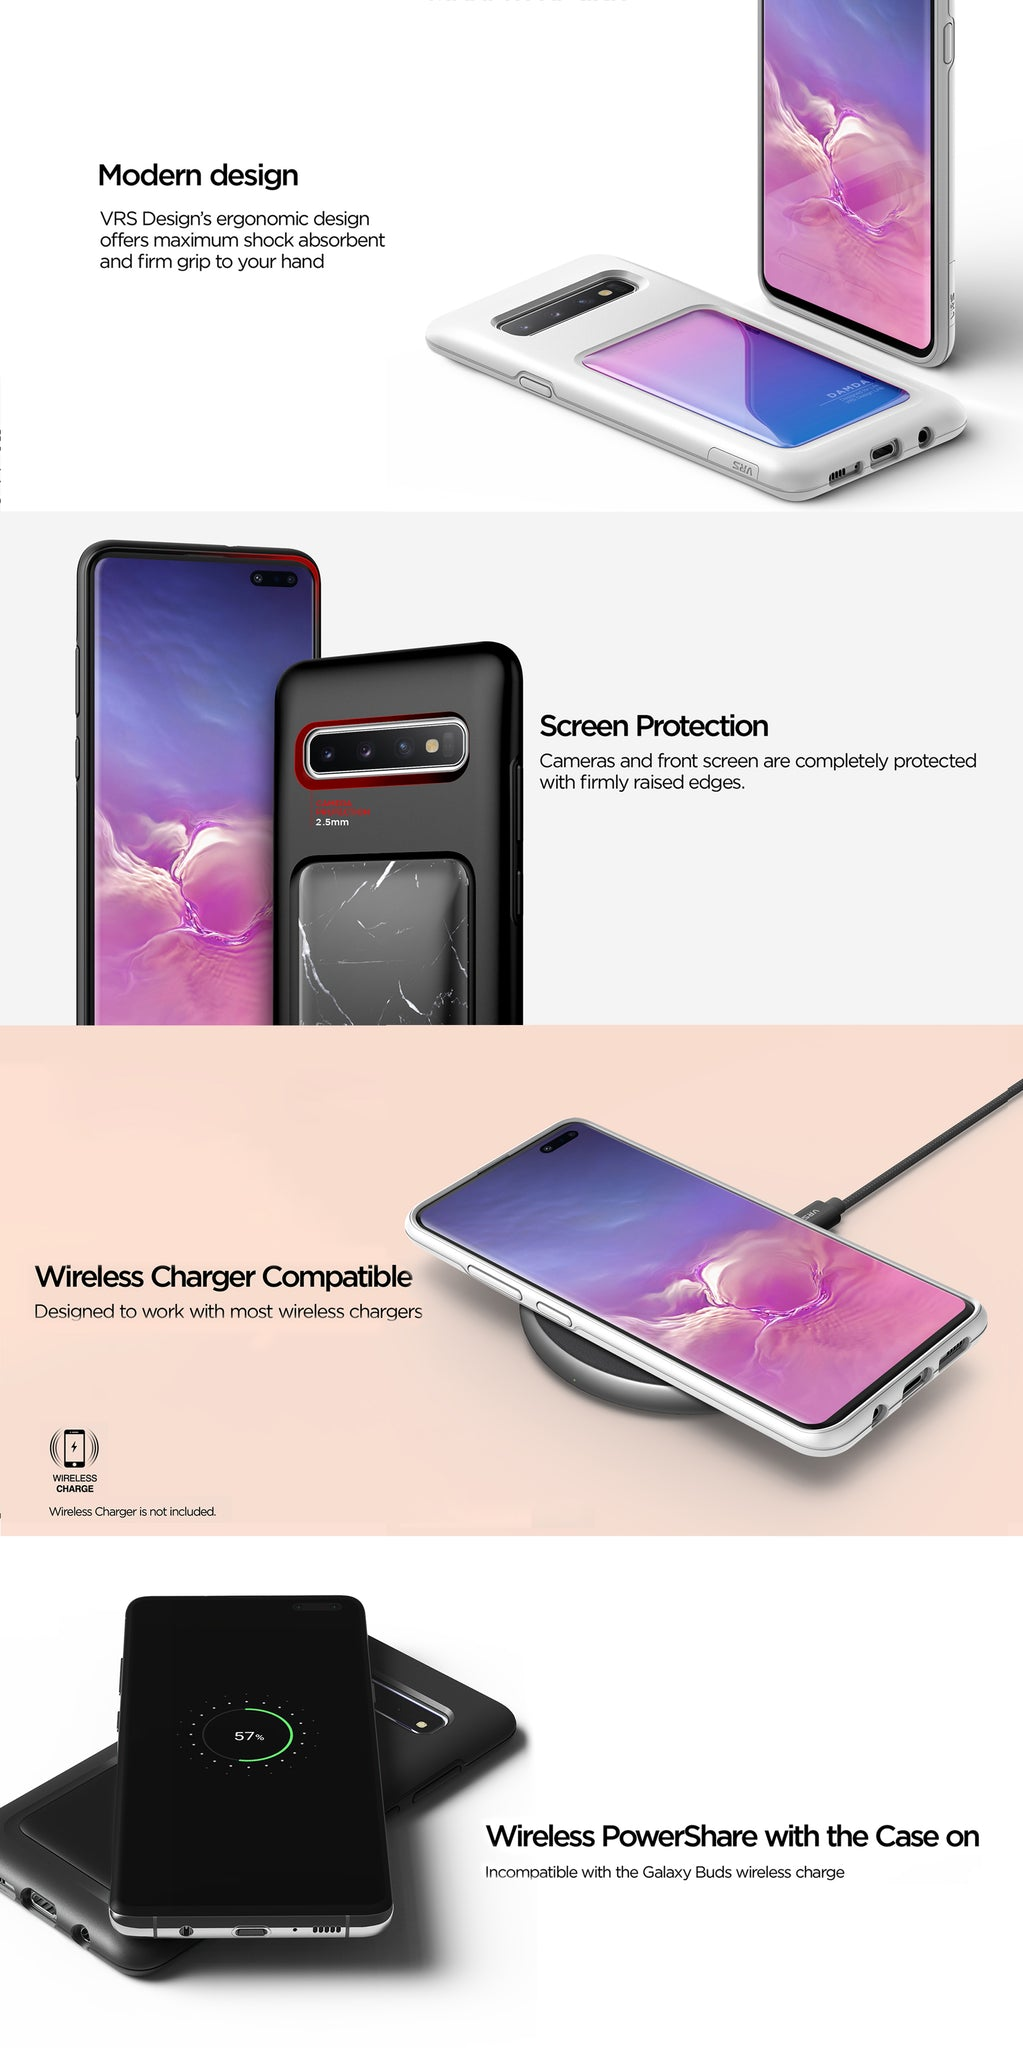 VRS Design | The Best Protection Case for Galaxy S10 Plus - Damda High Pro Shield